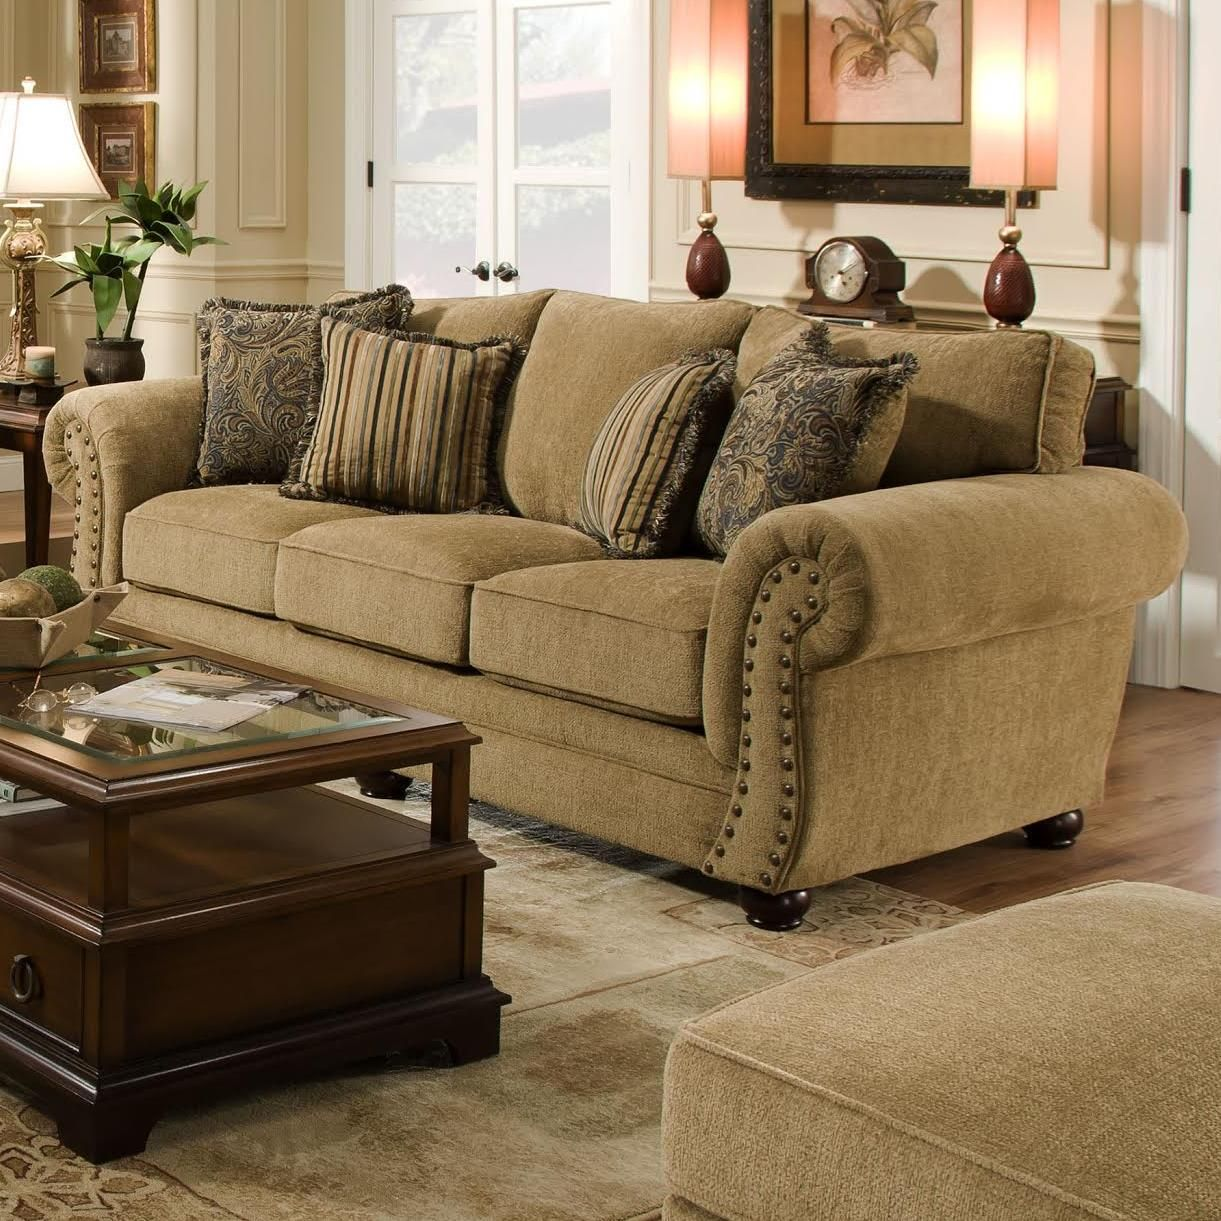 Chair Covers Jackson Ms How To Paint A Leather 4277 Sofa By United Furniture Industries Miskelly